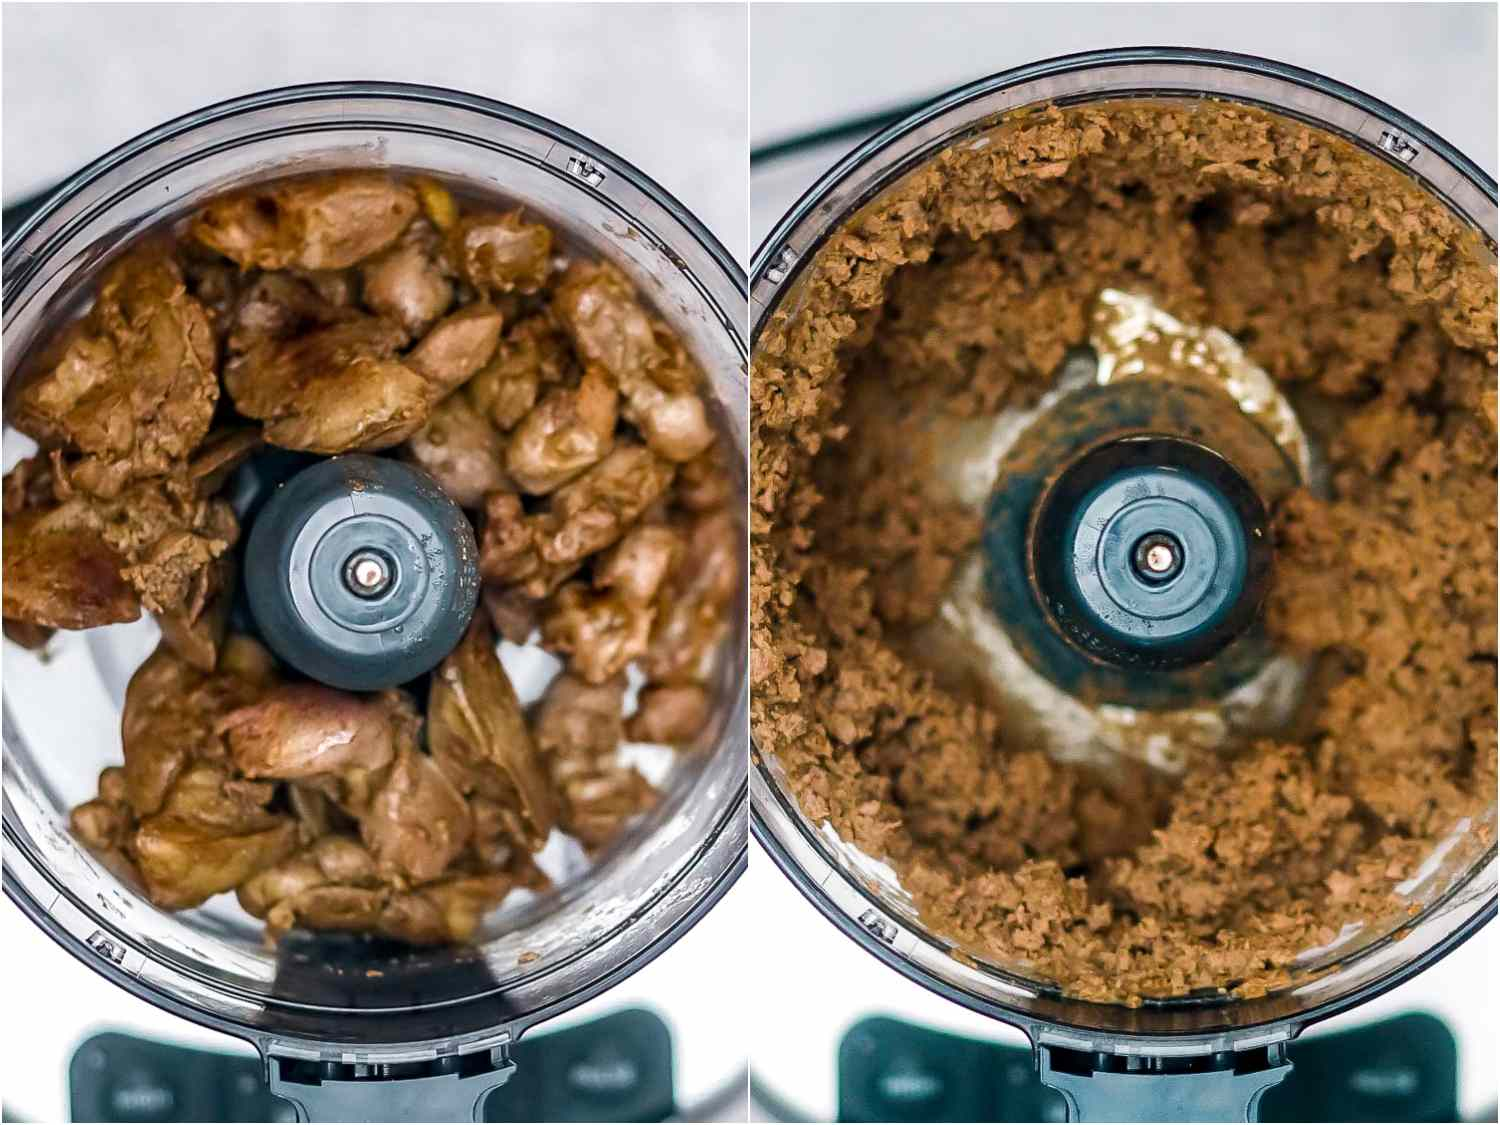 cooked giblets before and after being pulsed in a food processor